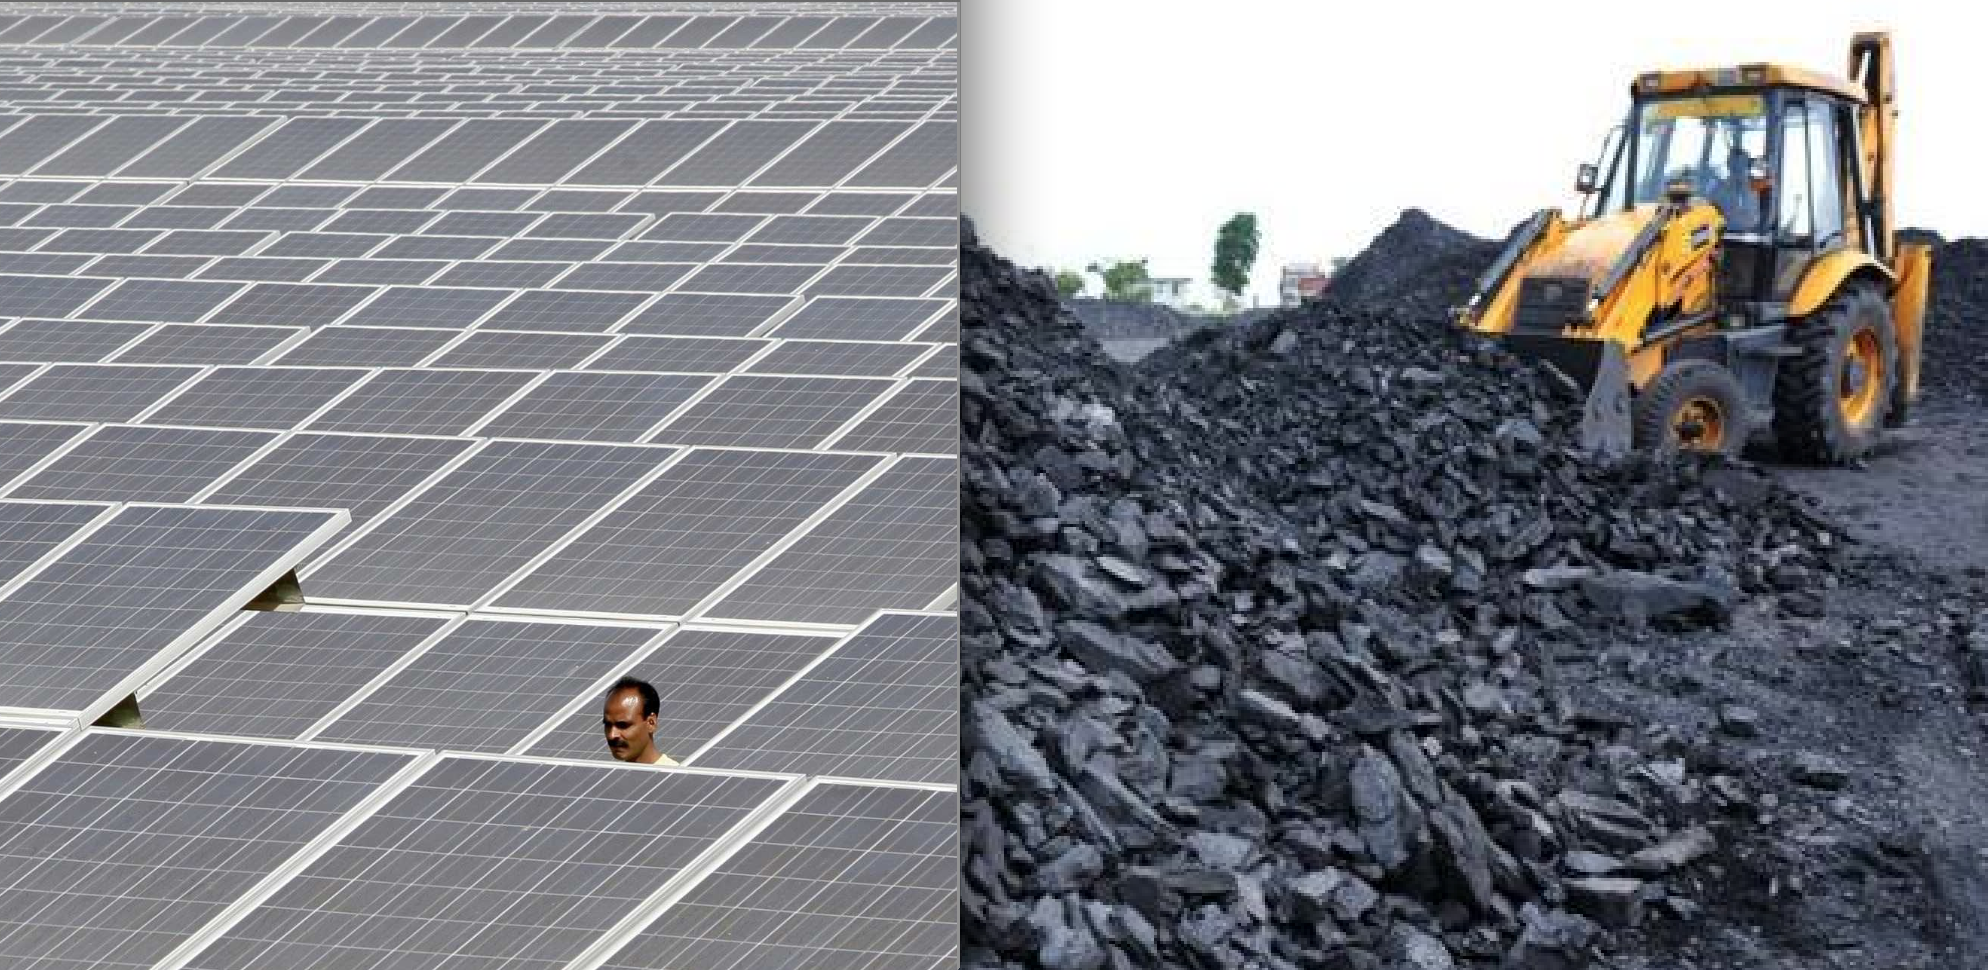 Coal India, World's Largest Coal Producer, Scraps 37 Mines Due to Plummeting Solar Prices